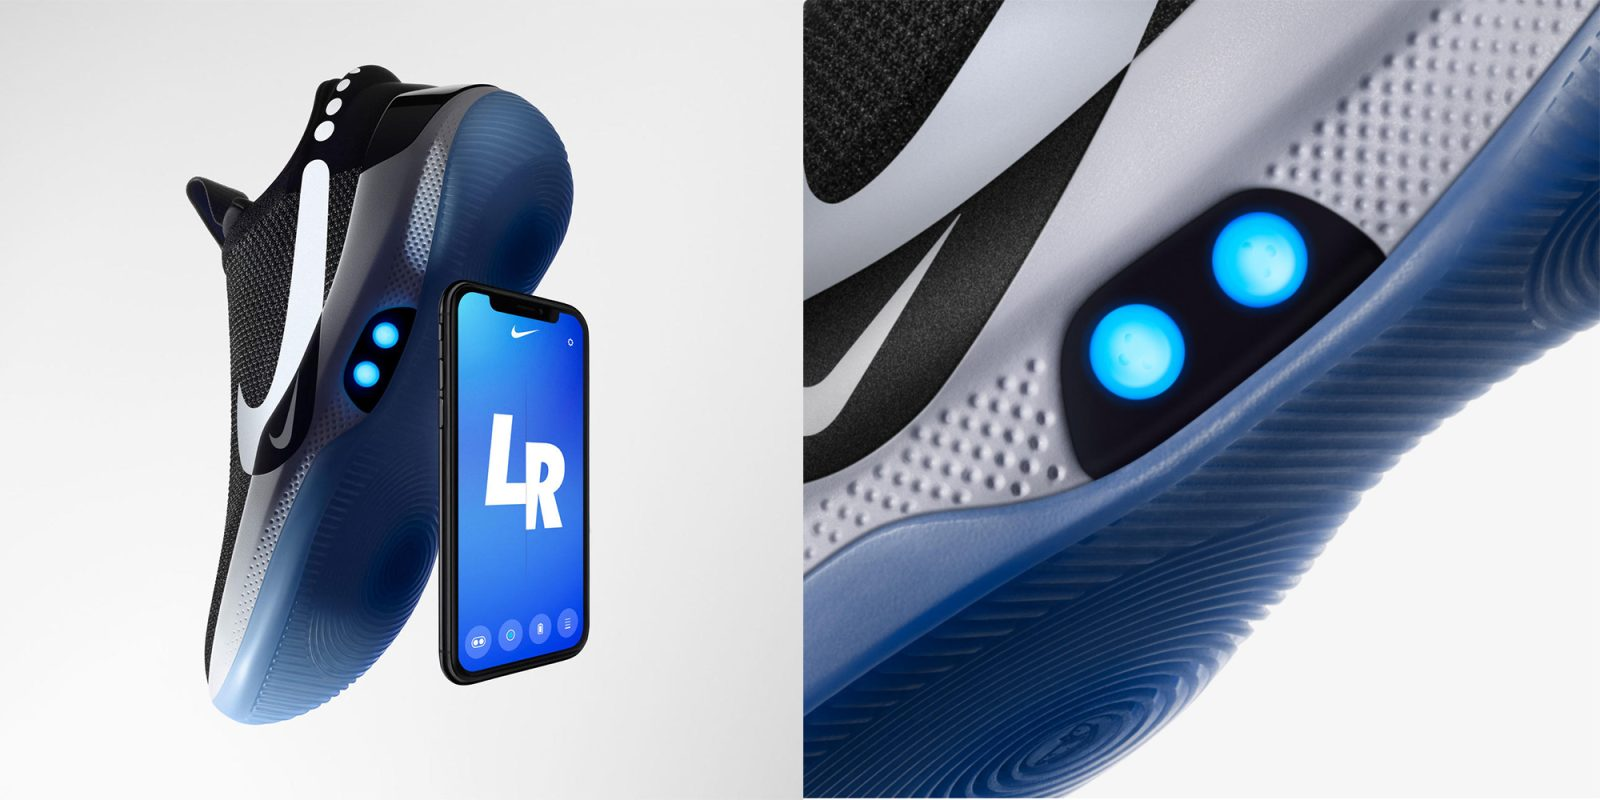 0a86c4093 Nike Adapt BB self-lacing basketball shoes arrive in February - 9to5Toys